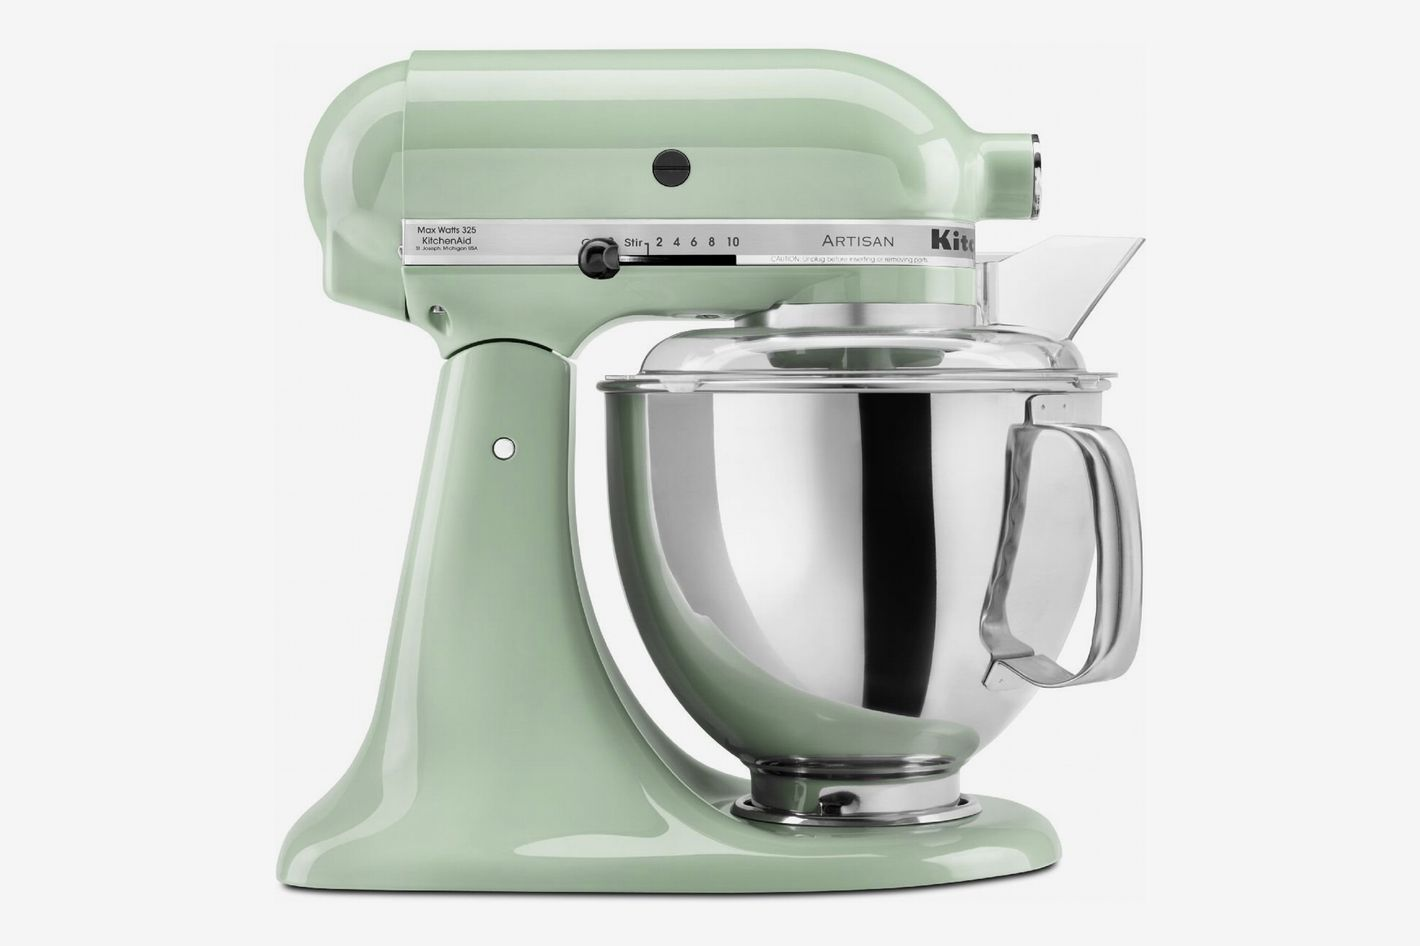 KitchenAid Artisan Tilt-Head Stand Mixer with Pouring Shield, 5-Quart